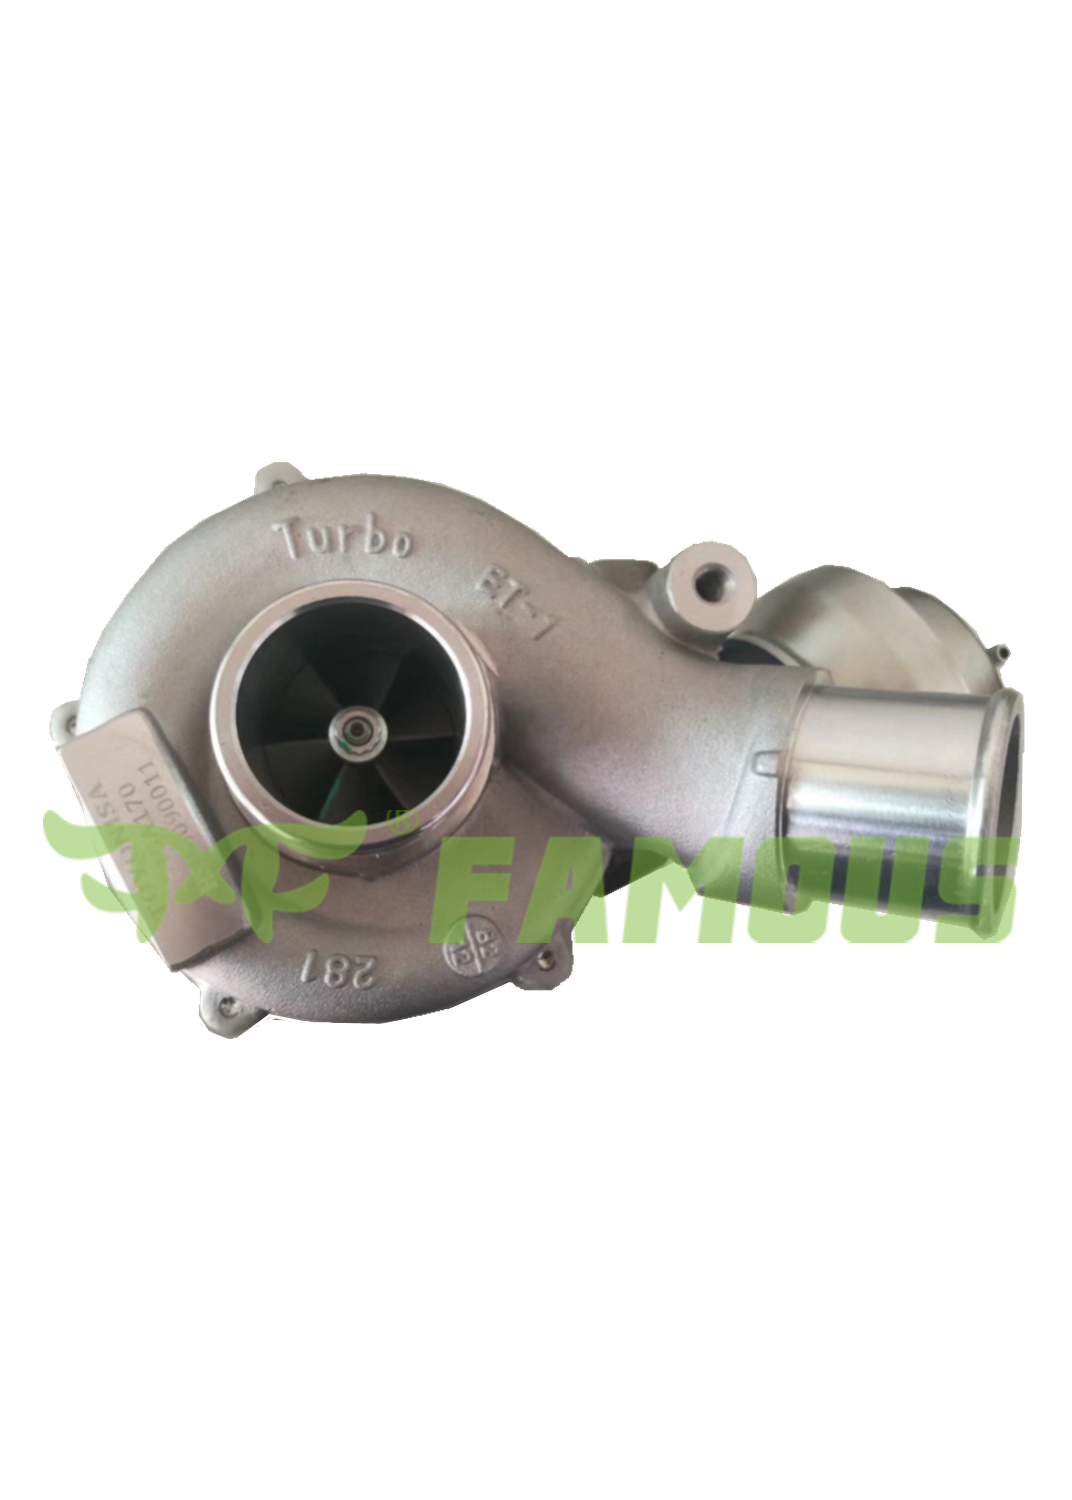 Specifications of RHV4 VT16 turbo:Commodity turbocharger ; Model Number RHV4 VT16; VAD20022; 1515A170; Application for Mitsubishi Triton 2.5L D 4D56